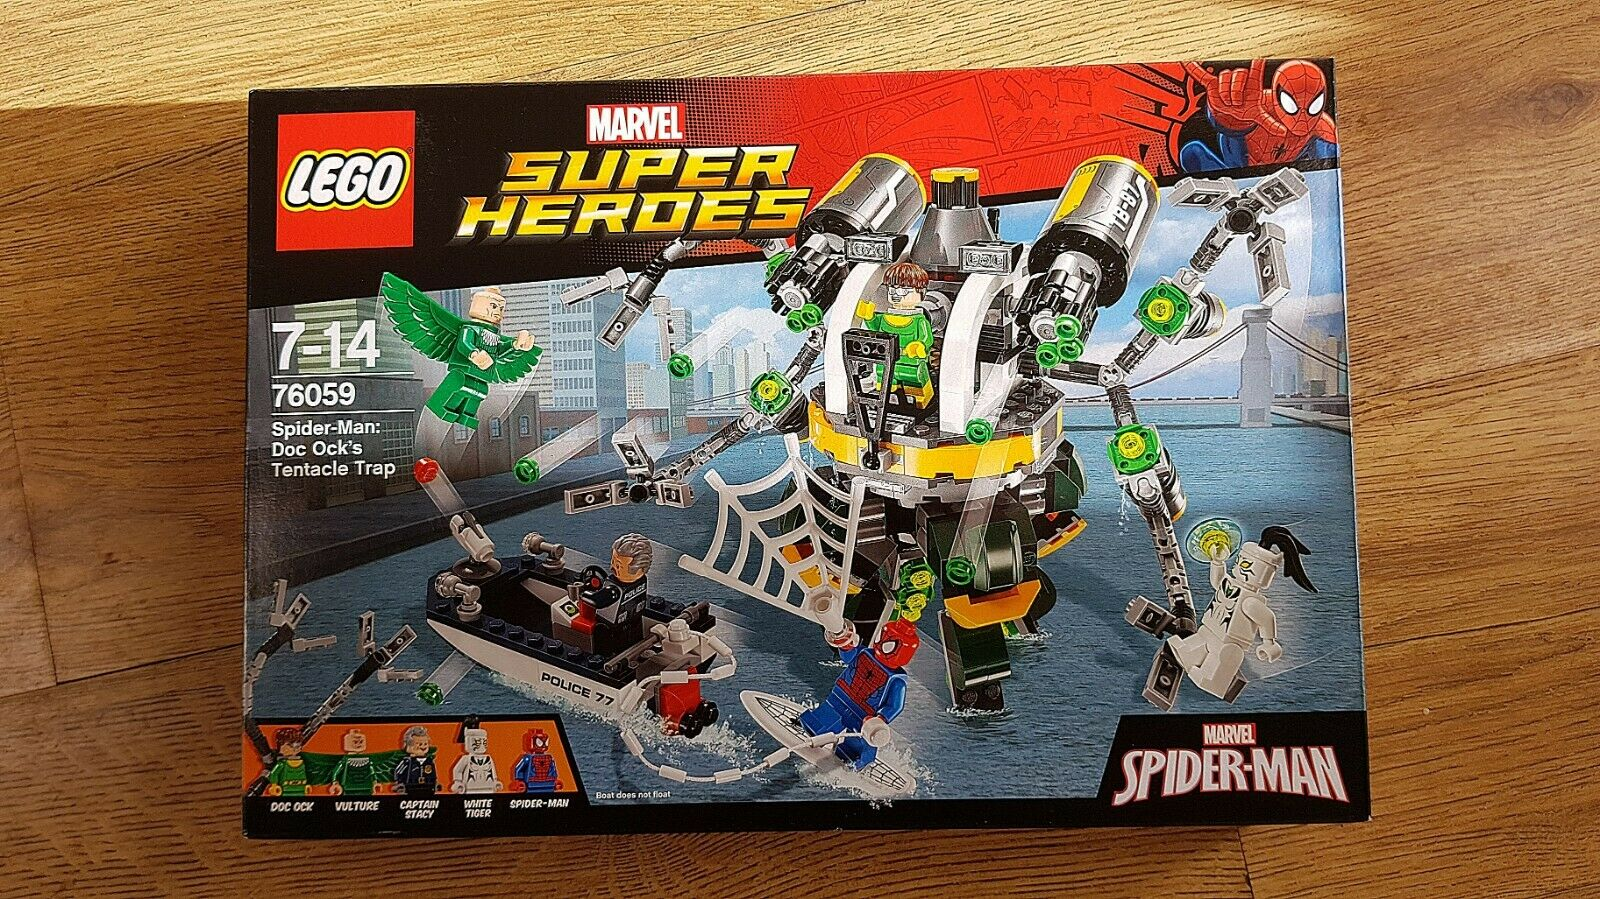 LEGO Marvel 76059 Spider-Man  Doc Ock's Ock's Ock's Tentacle Trap   New Unopened Great 2b8c40